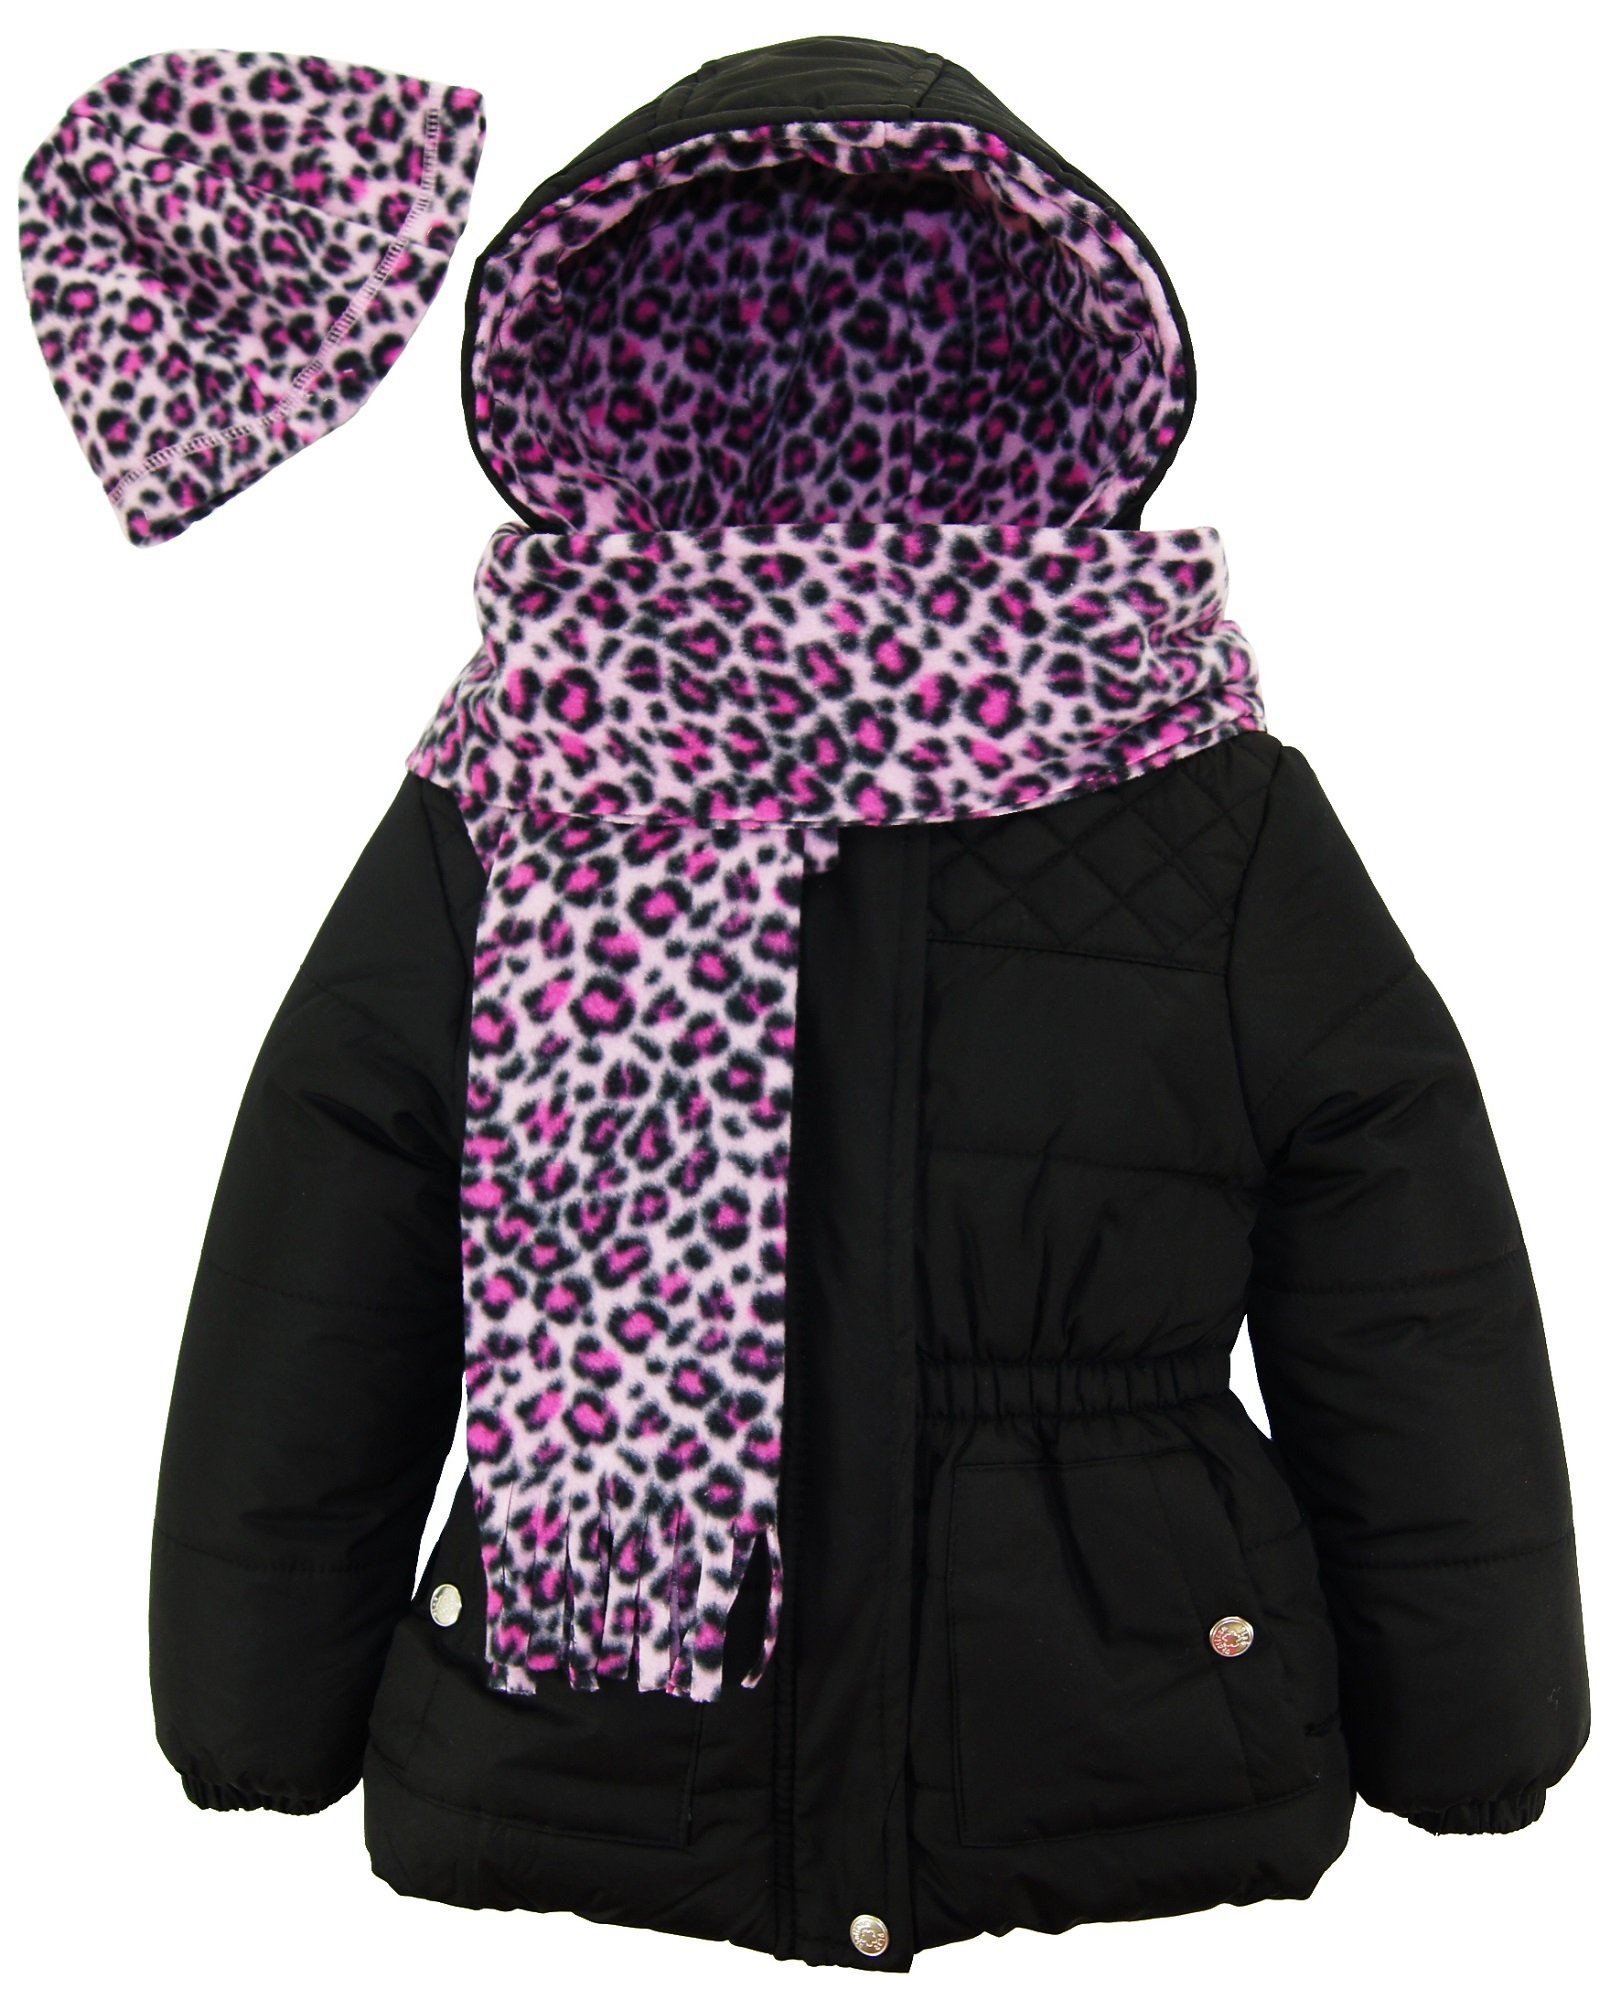 Pink Platinum Toddler Girls' Quilted Puffer with Hat and Scarf, Black, 4T